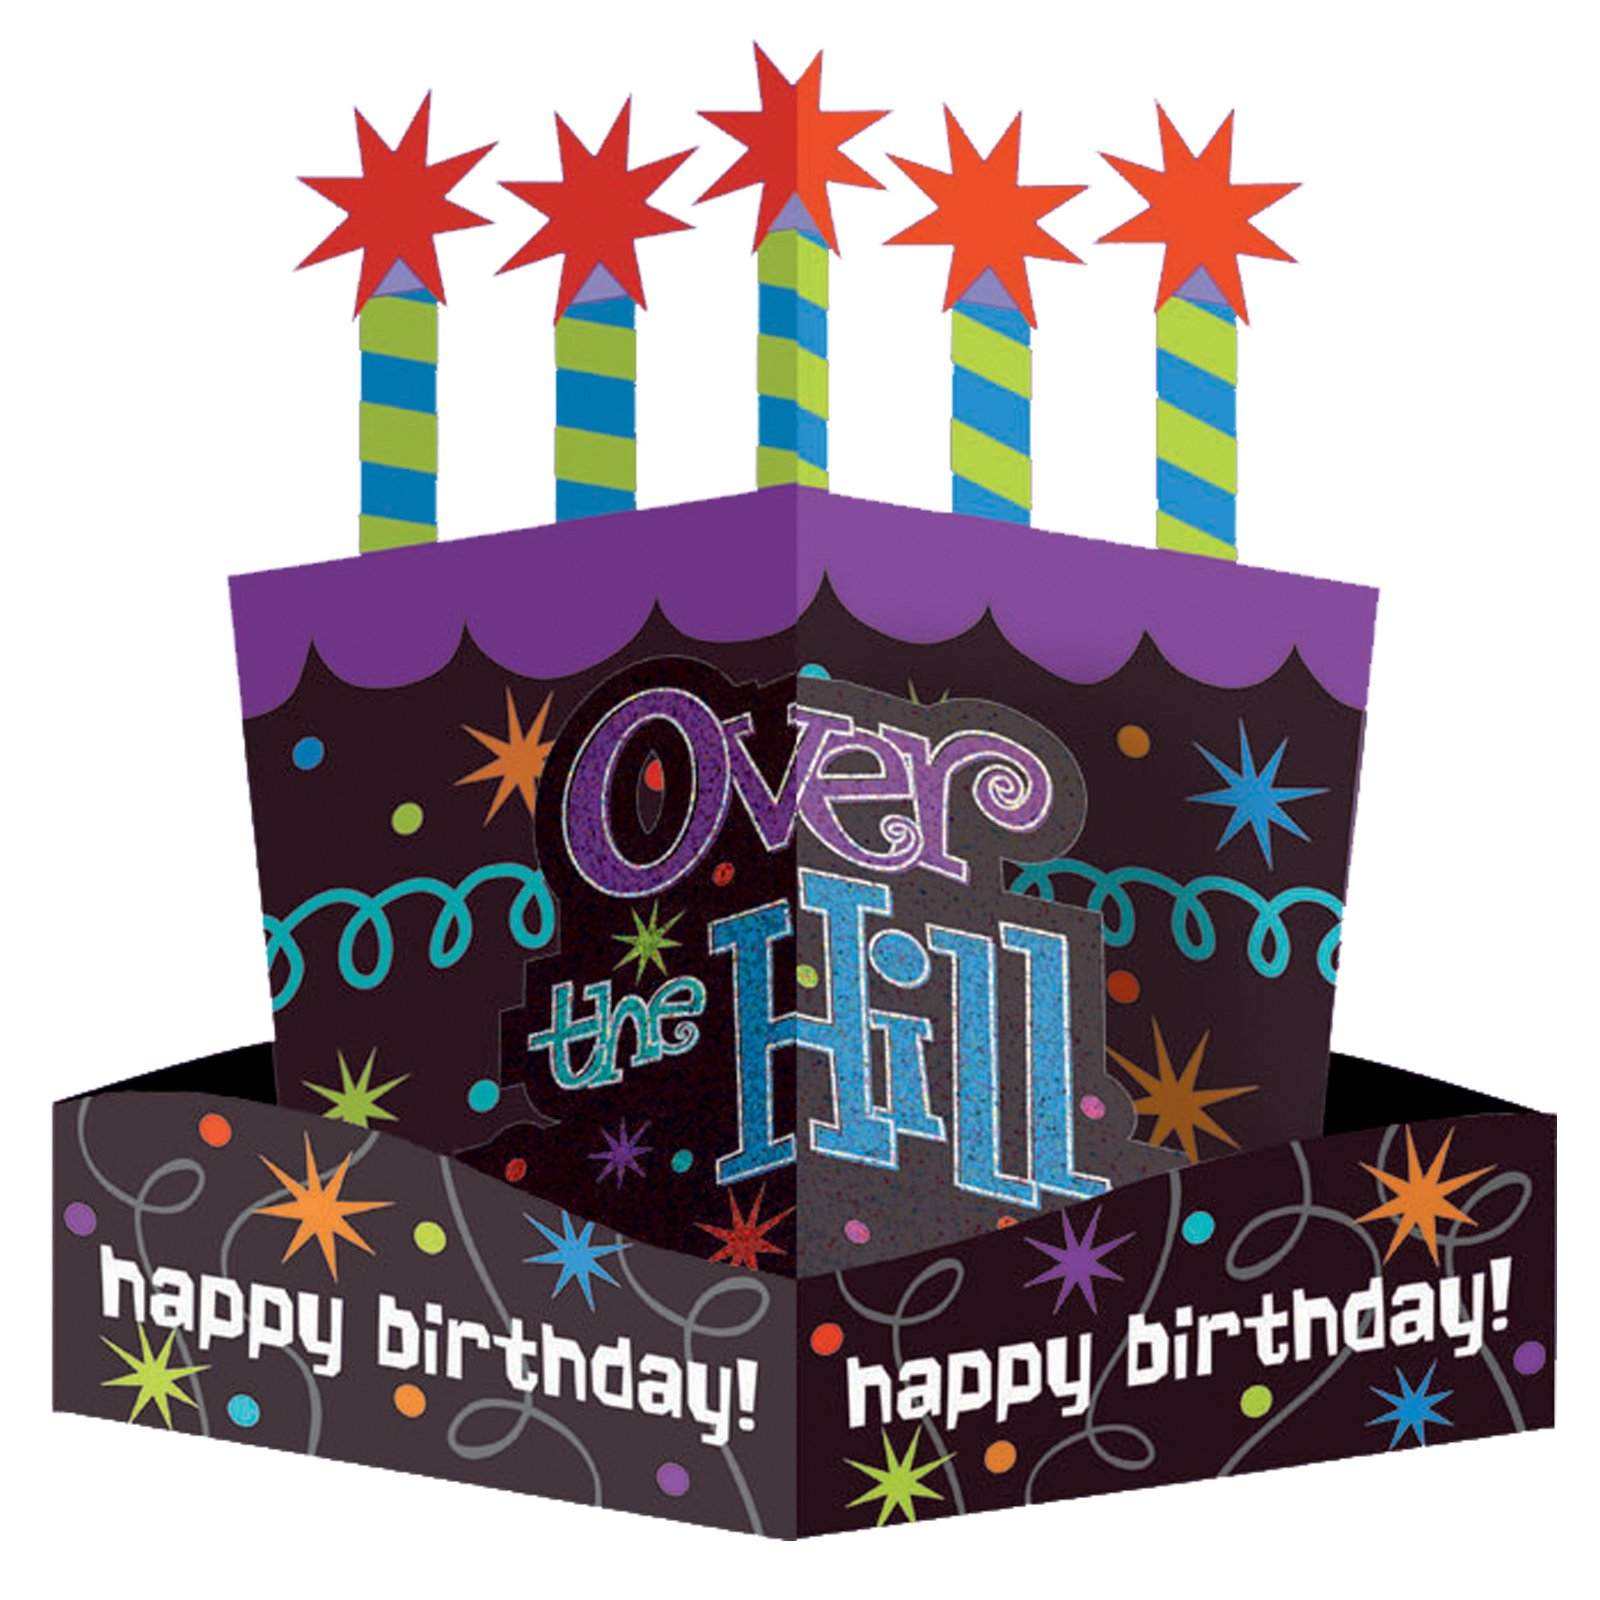 50th birthday pictures clip art ; 5cRX6dXKi